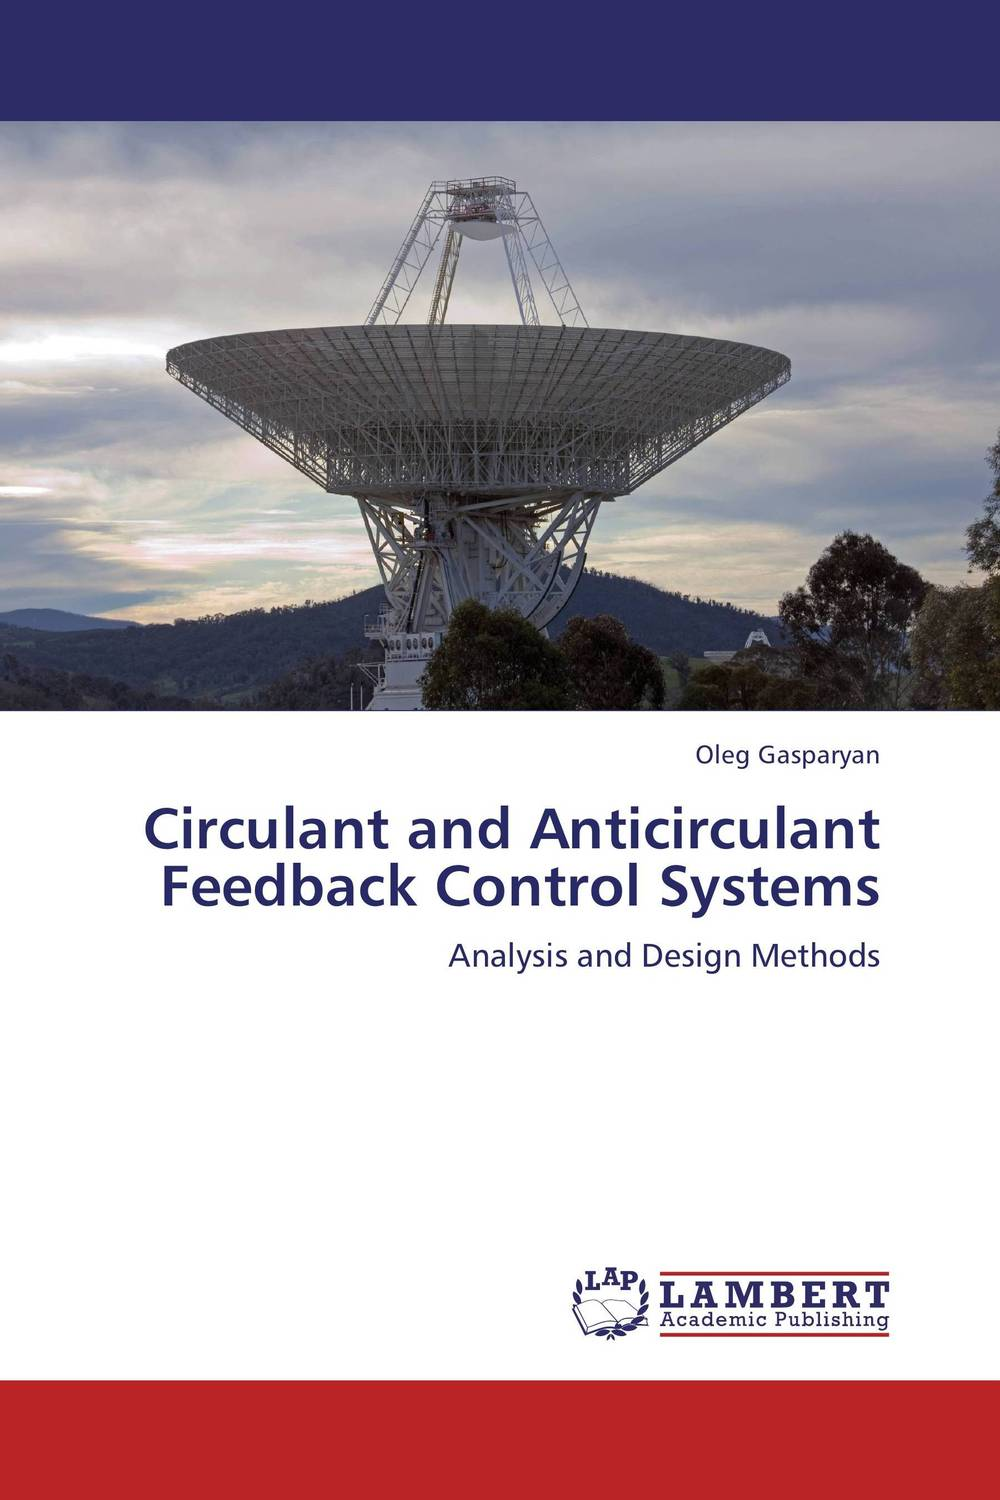 Circulant and Anticirculant Feedback Control Systems prasanta kumar hota and anil kumar singh synthetic photoresponsive systems